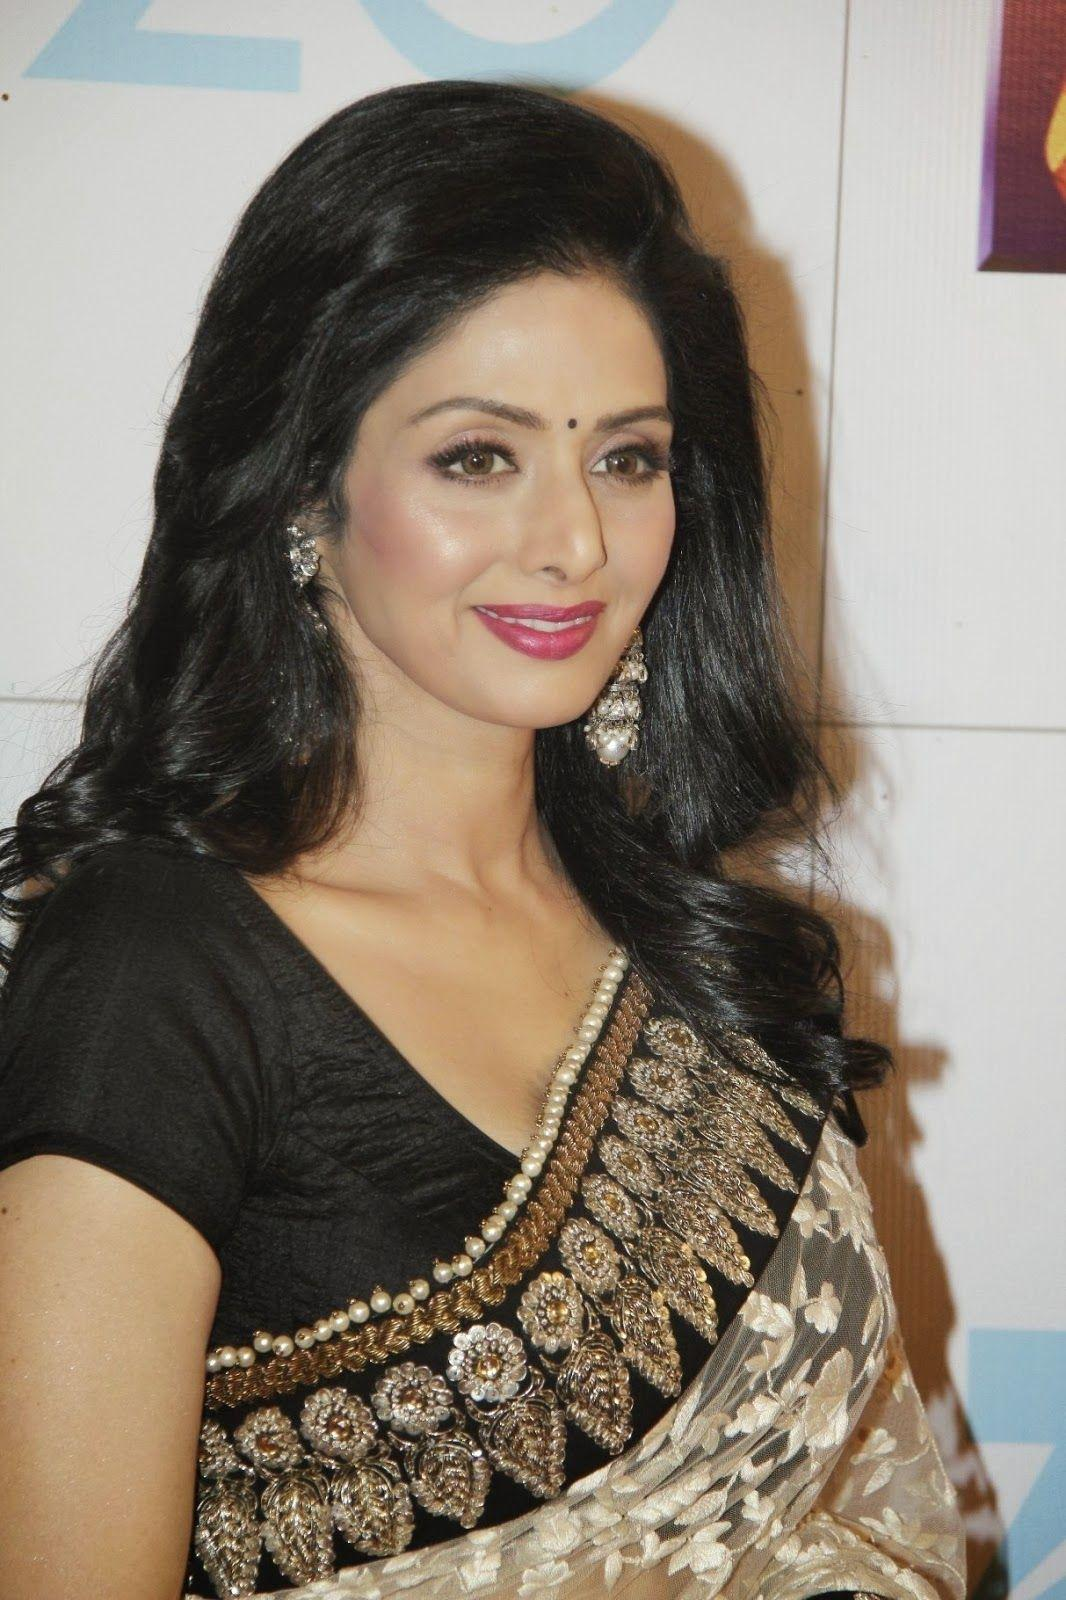 Hot Sridevi HD Wallpapers Image Pics And Photos Download